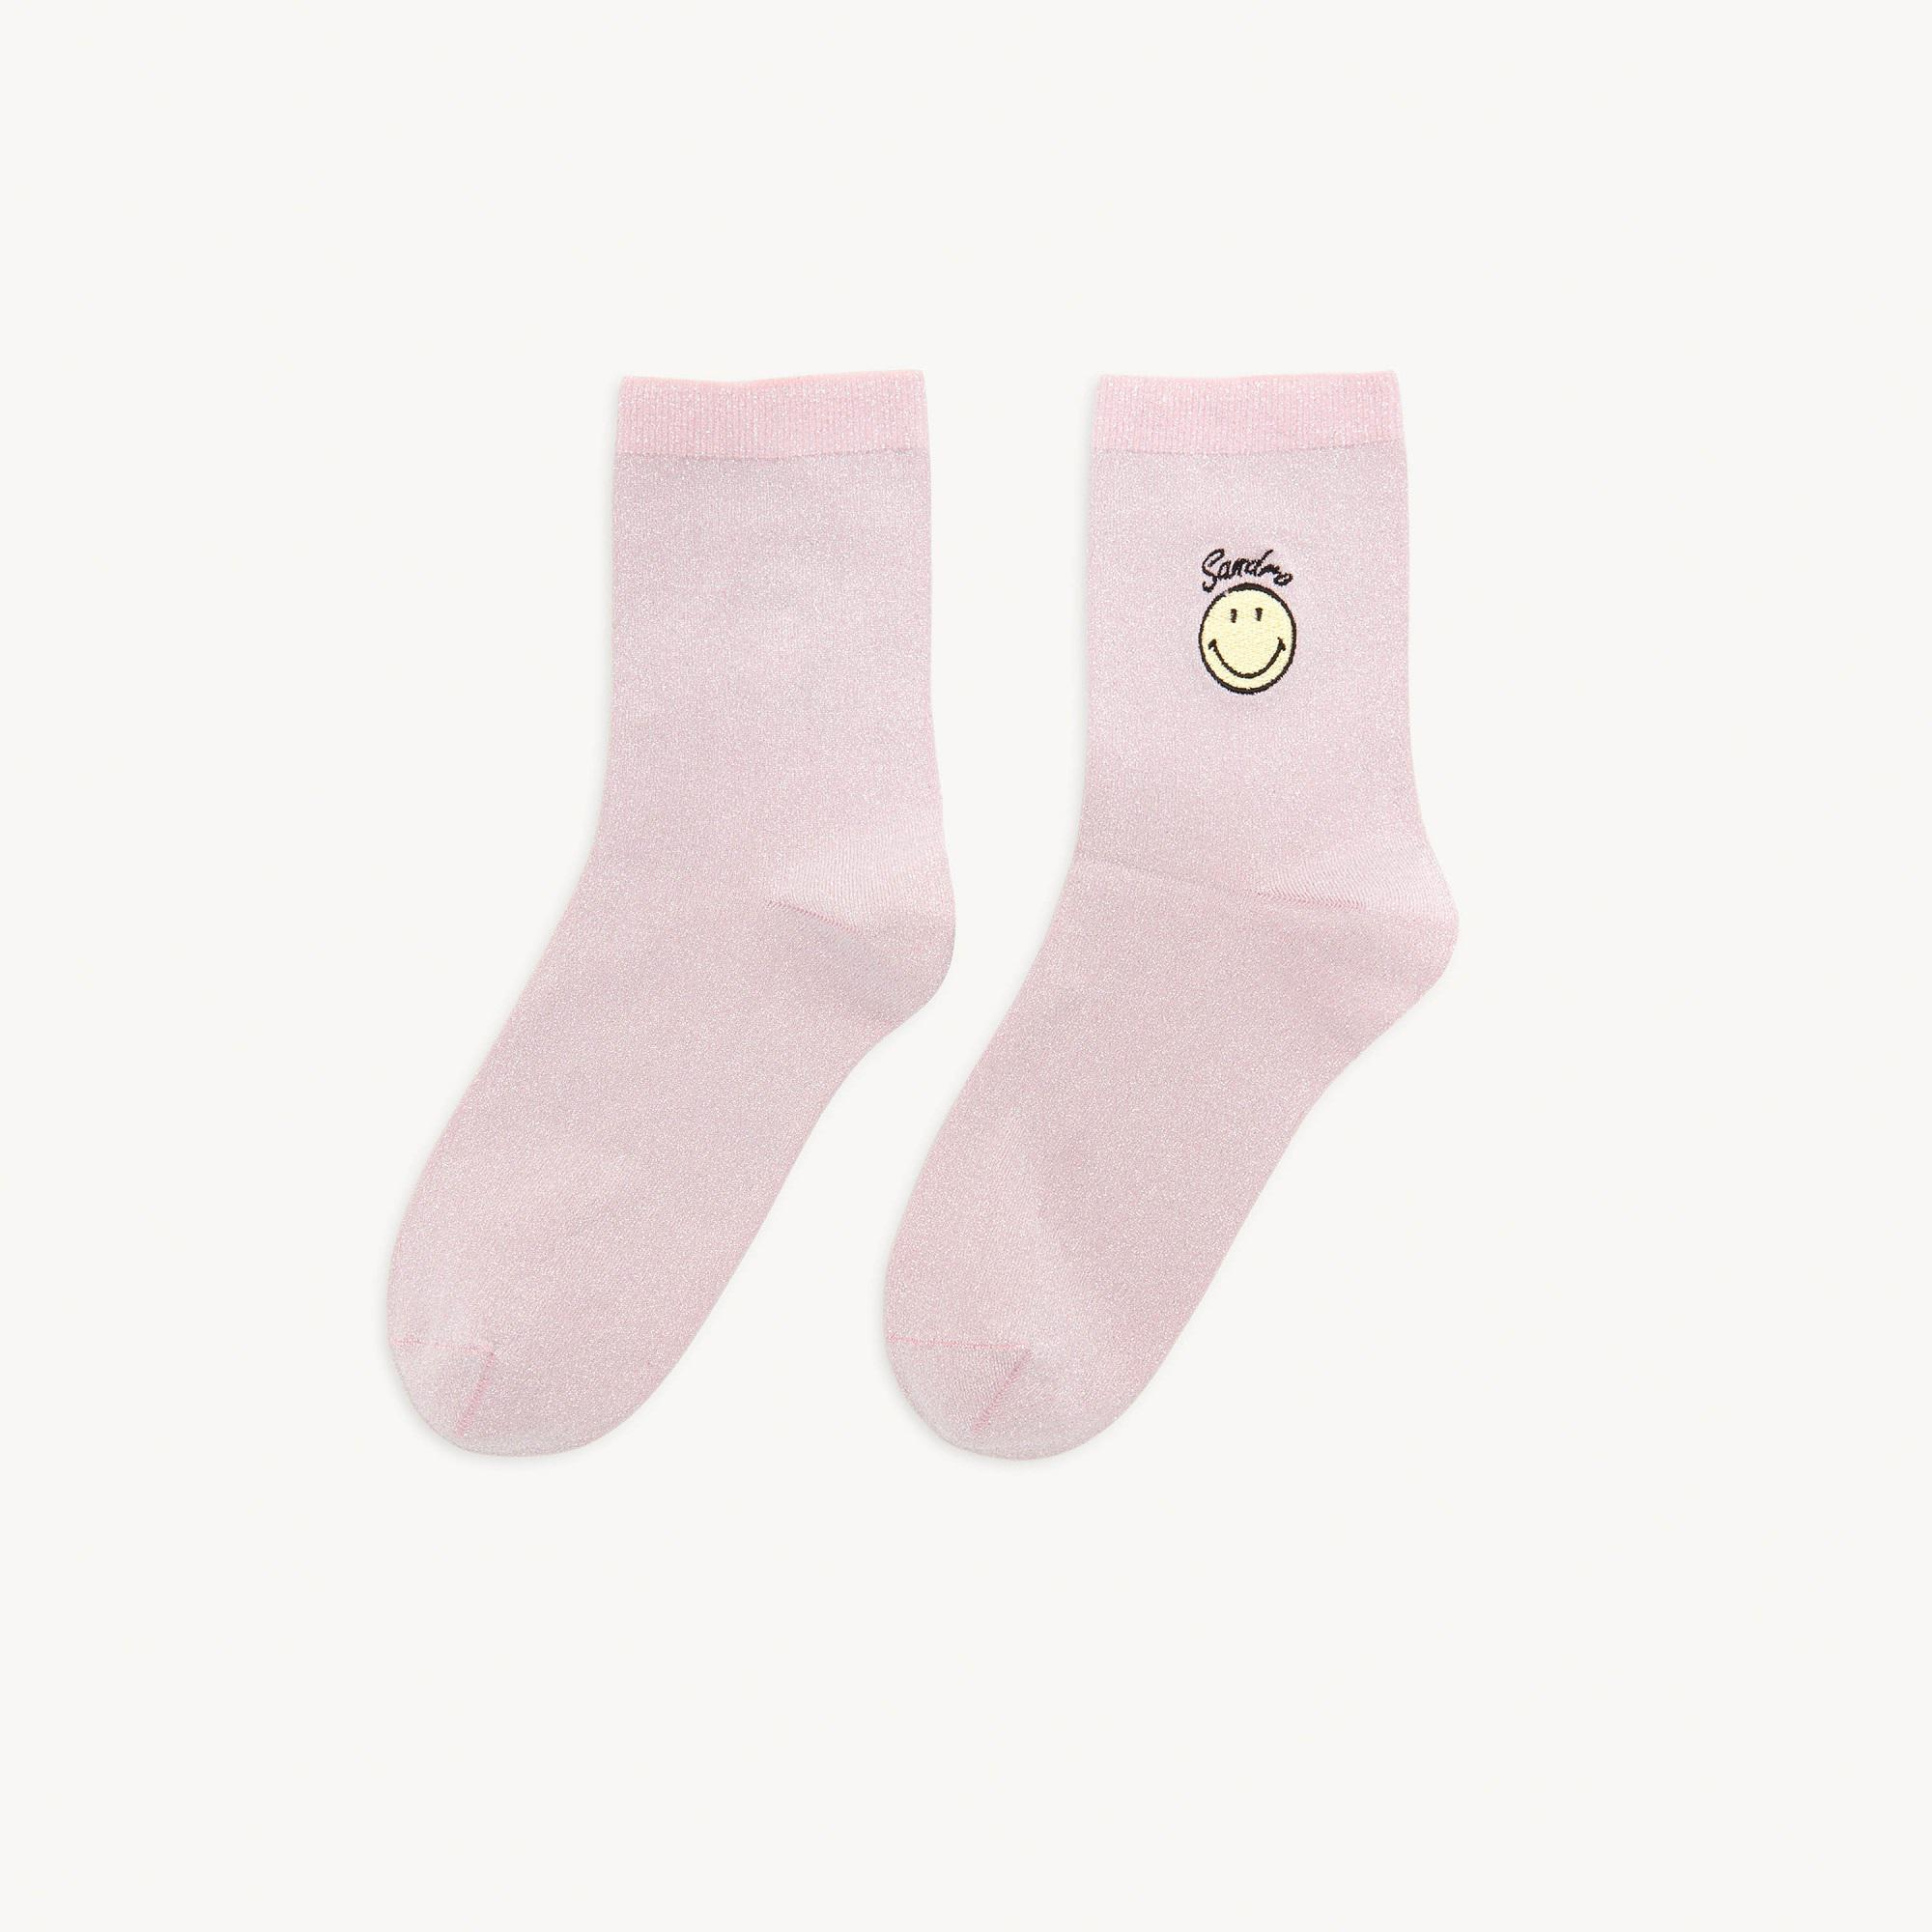 Smiley® Lurex socks with embroidery